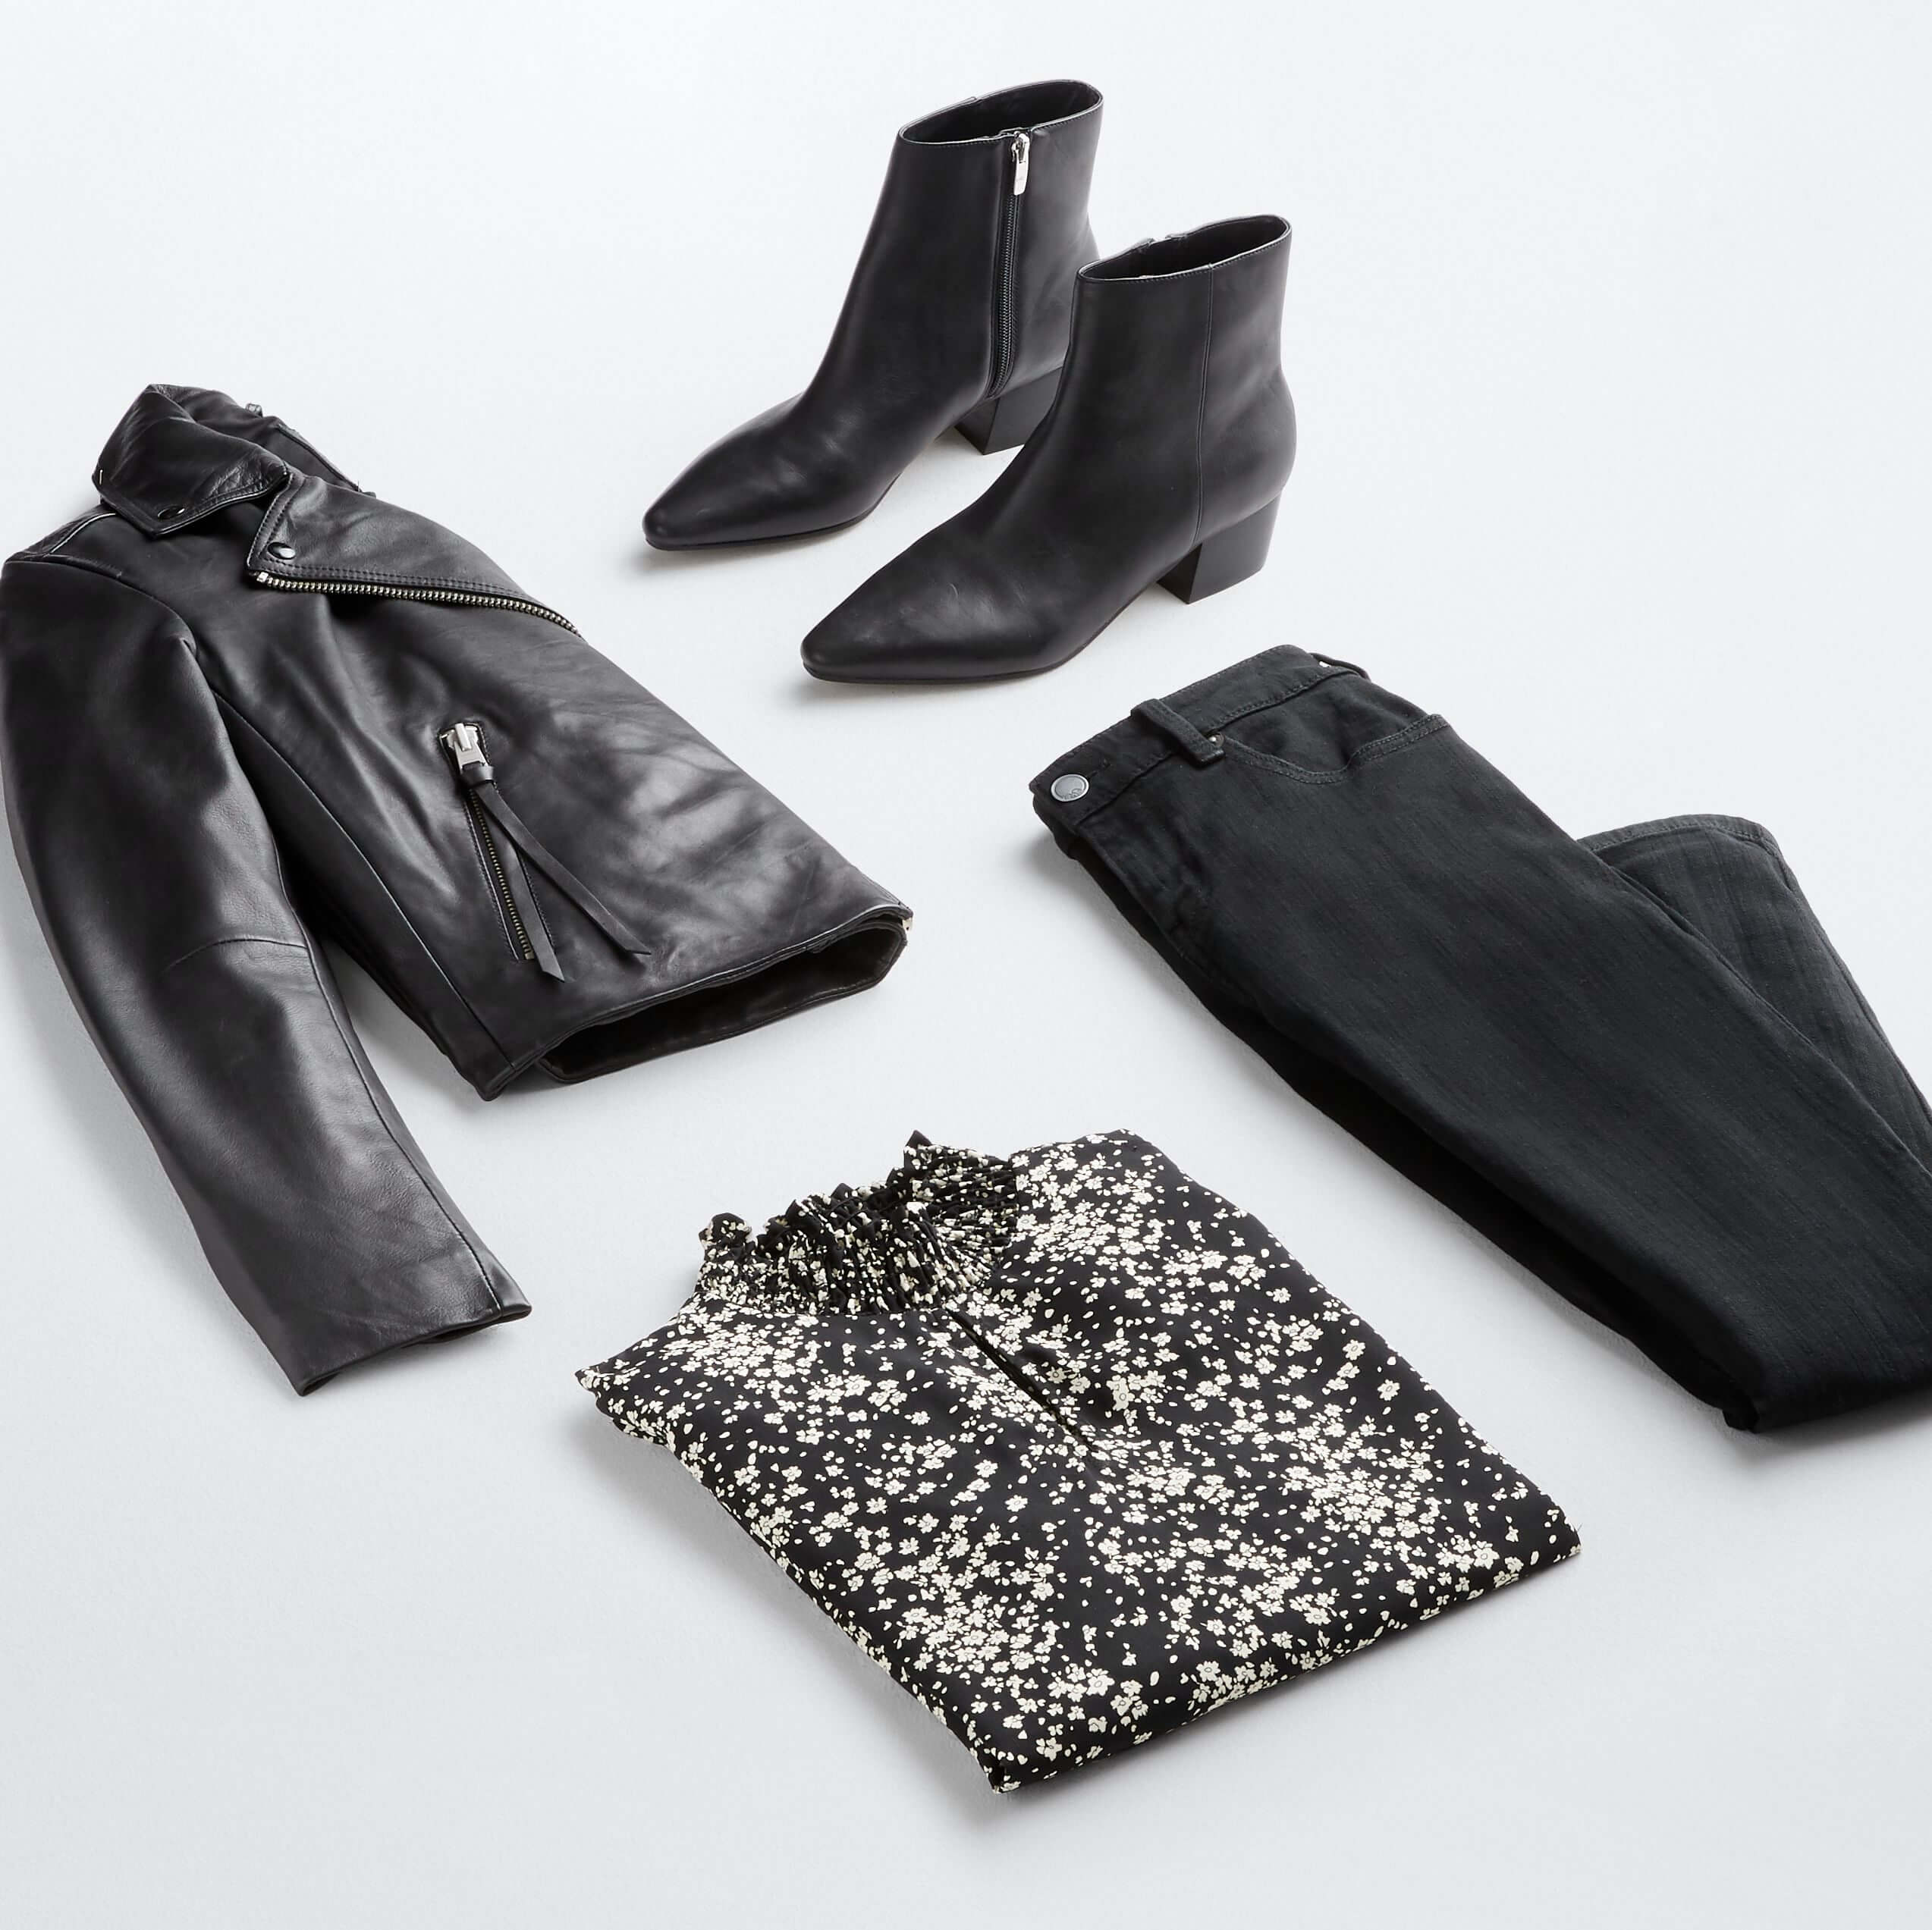 Stitch Fix Women's outfit laydown featuring a black leather jacket, black booties, black jeans and a black mock-neck printed top.